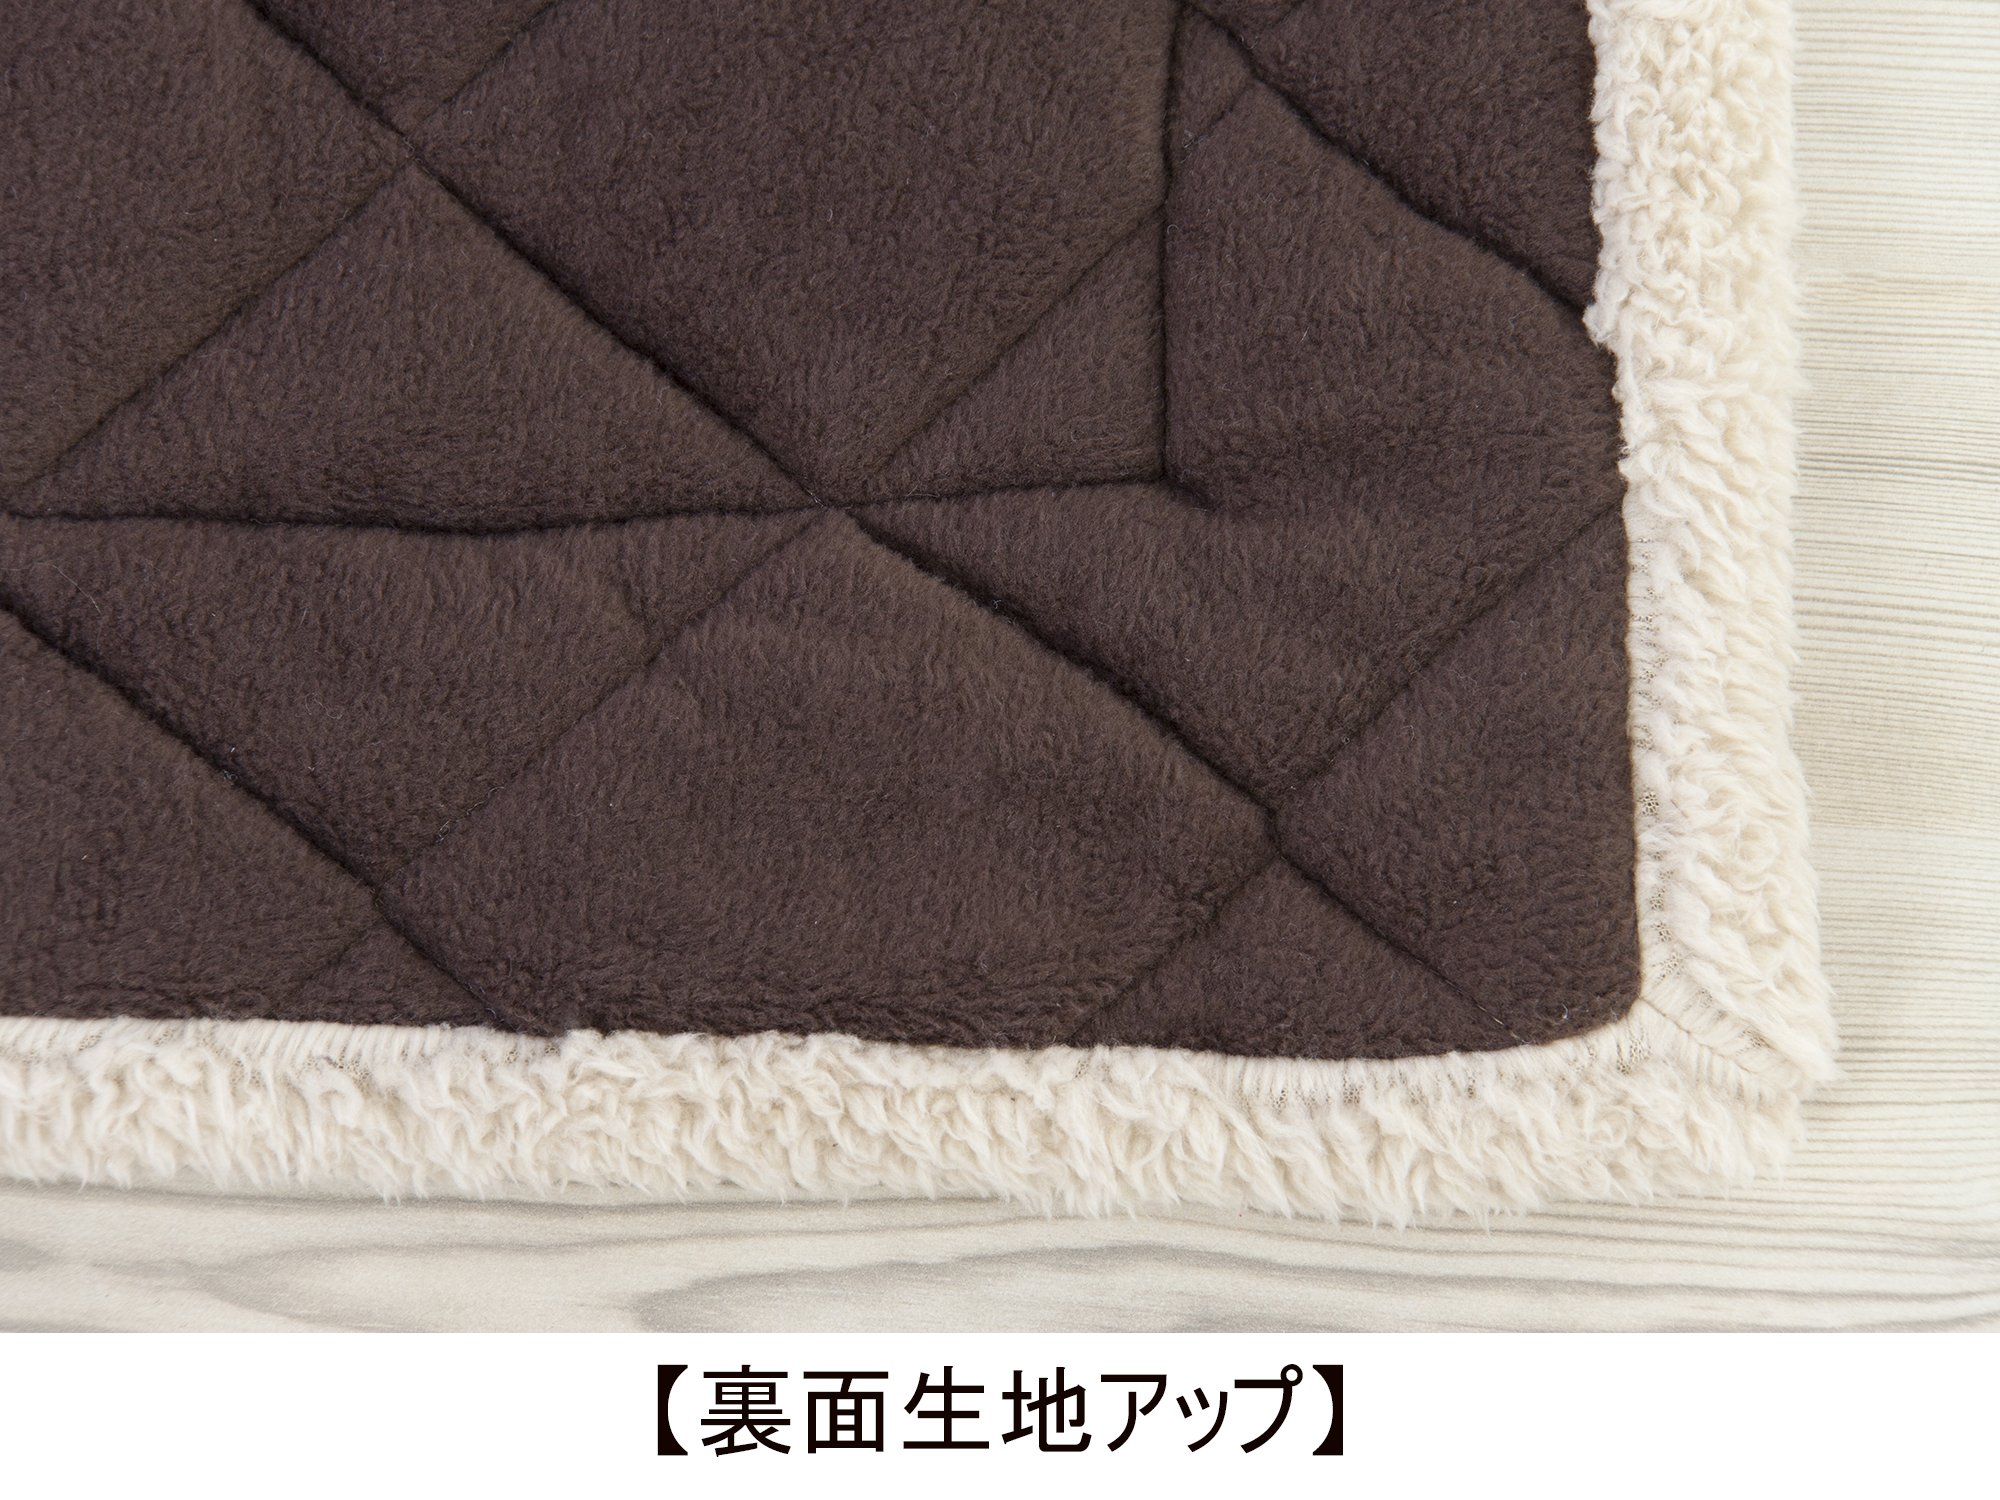 Azumaya Kotatsu Futon Square (75 x 75 Inches) Brown KK-101BR 100% Polyester Fabric by Azumaya Japan